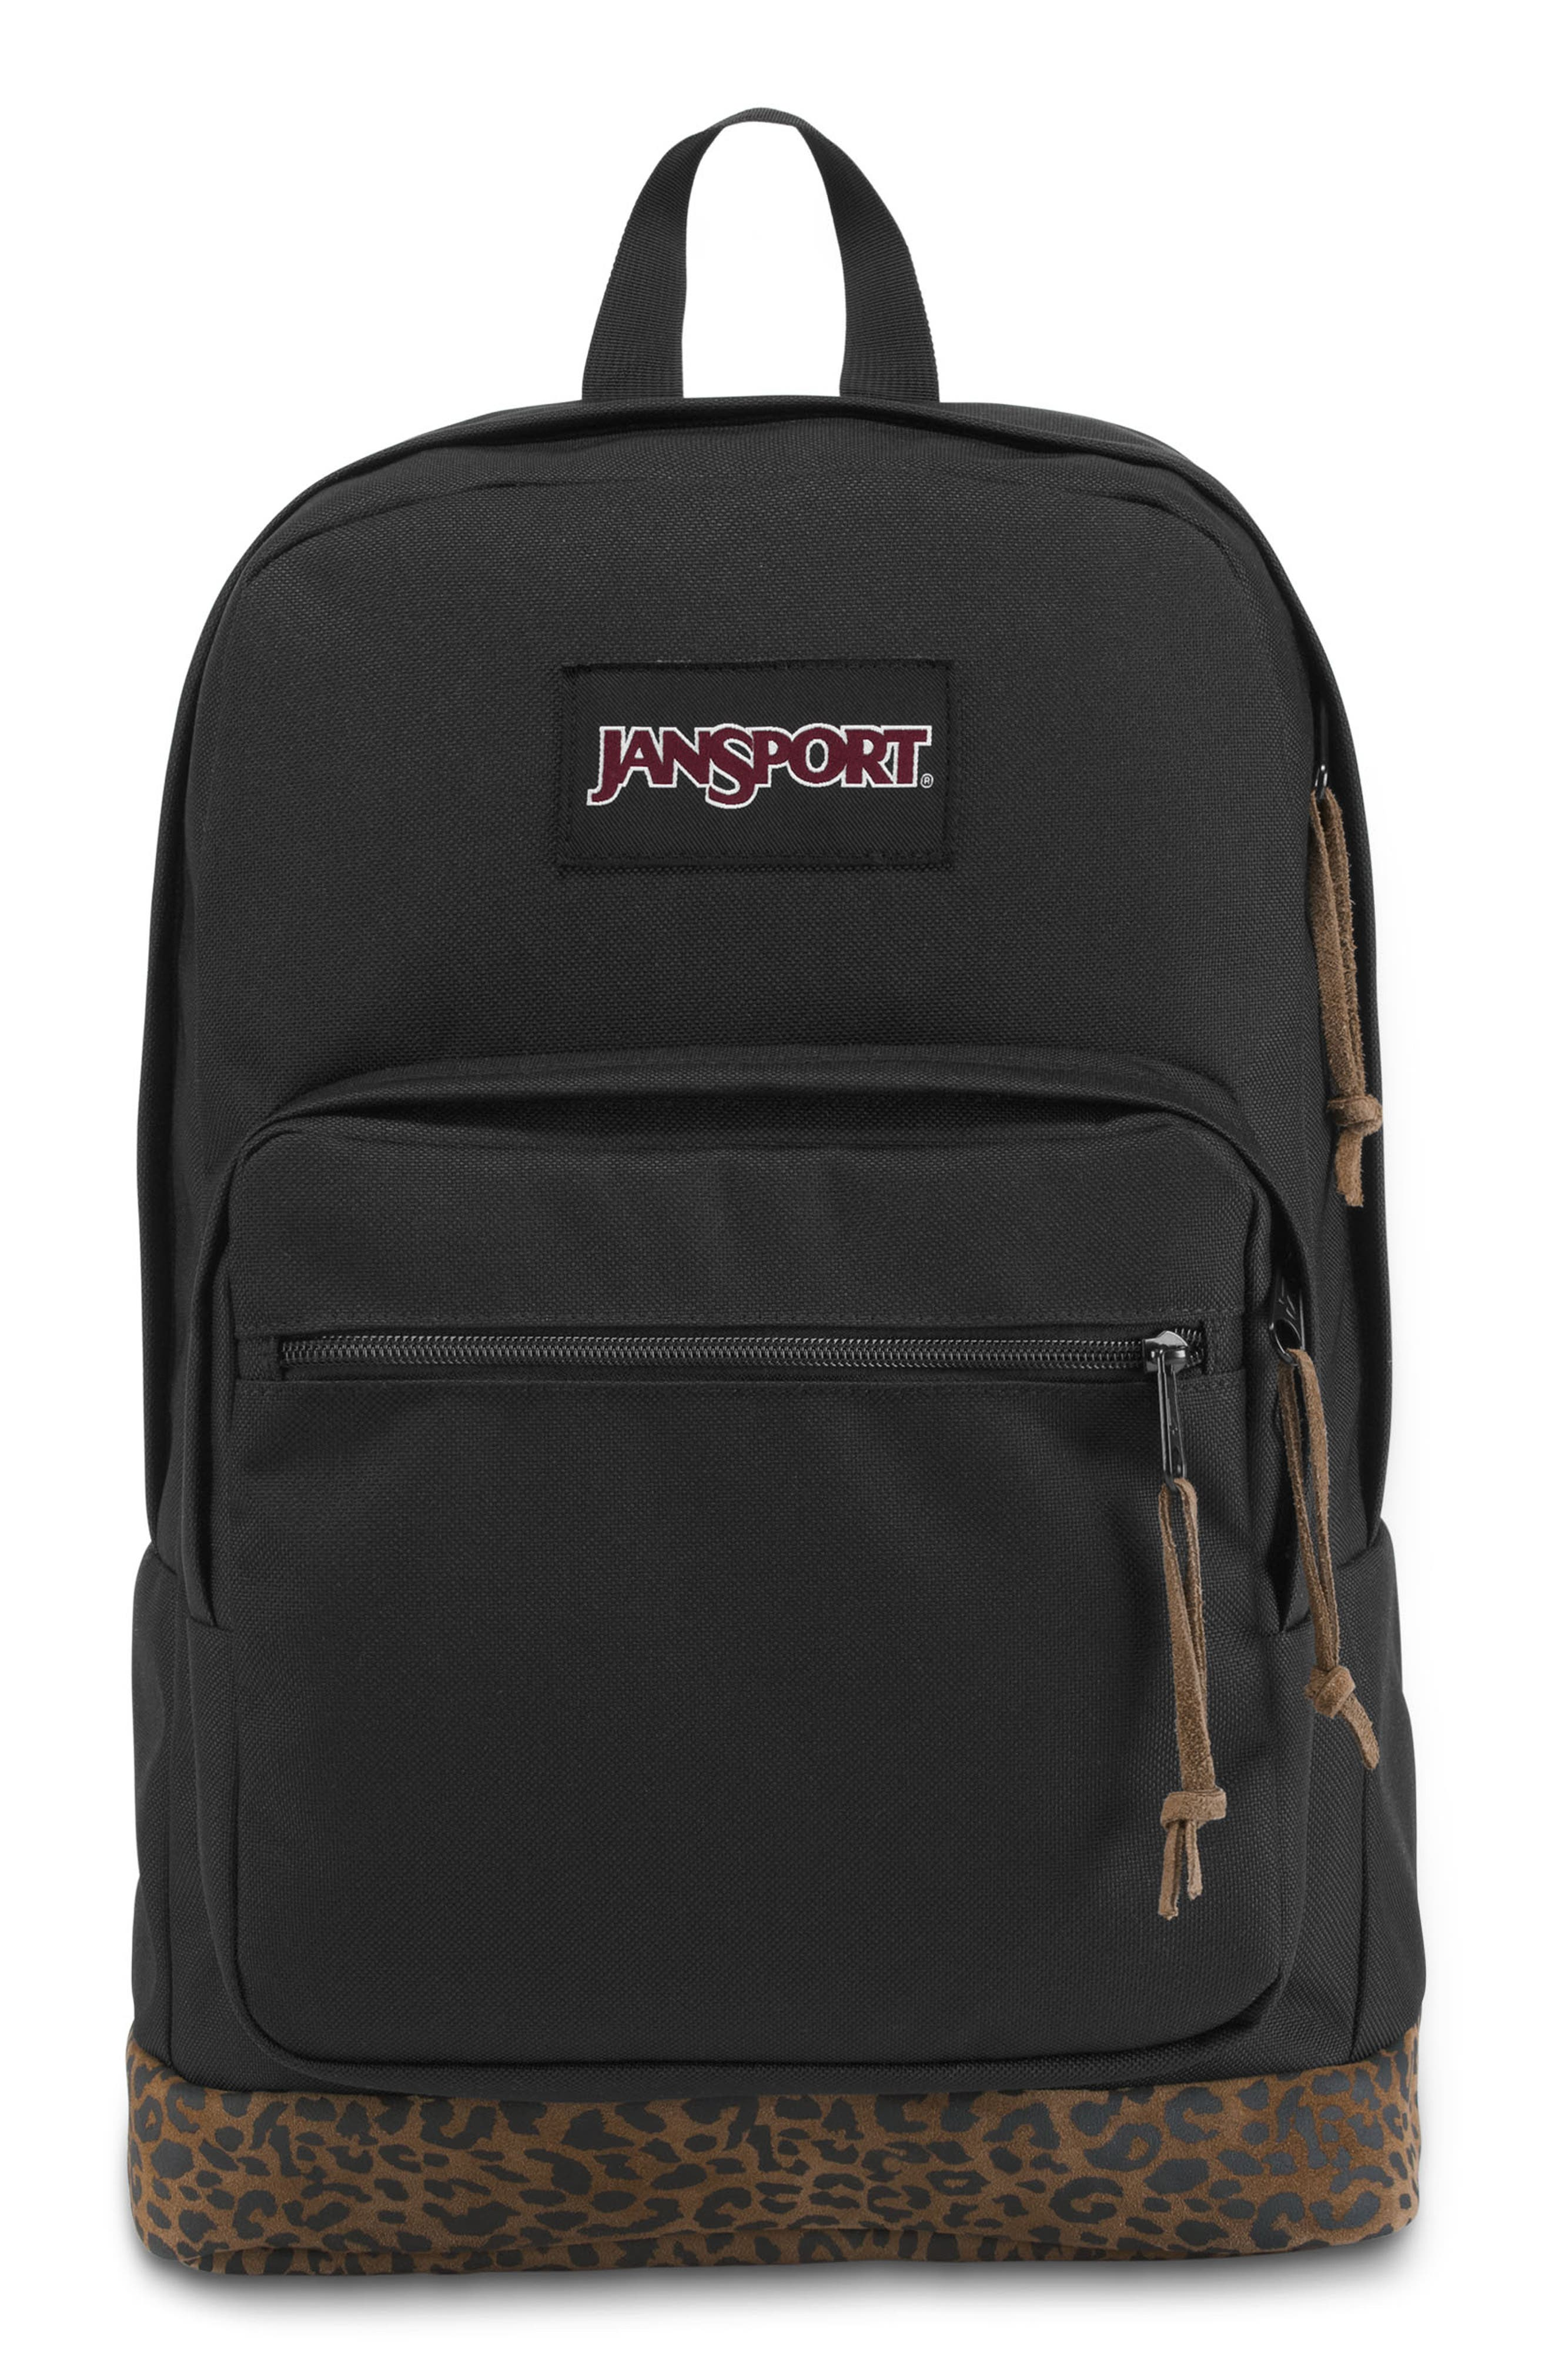 JANSPORT Right Pack Expressions Backpack in Geo Fade